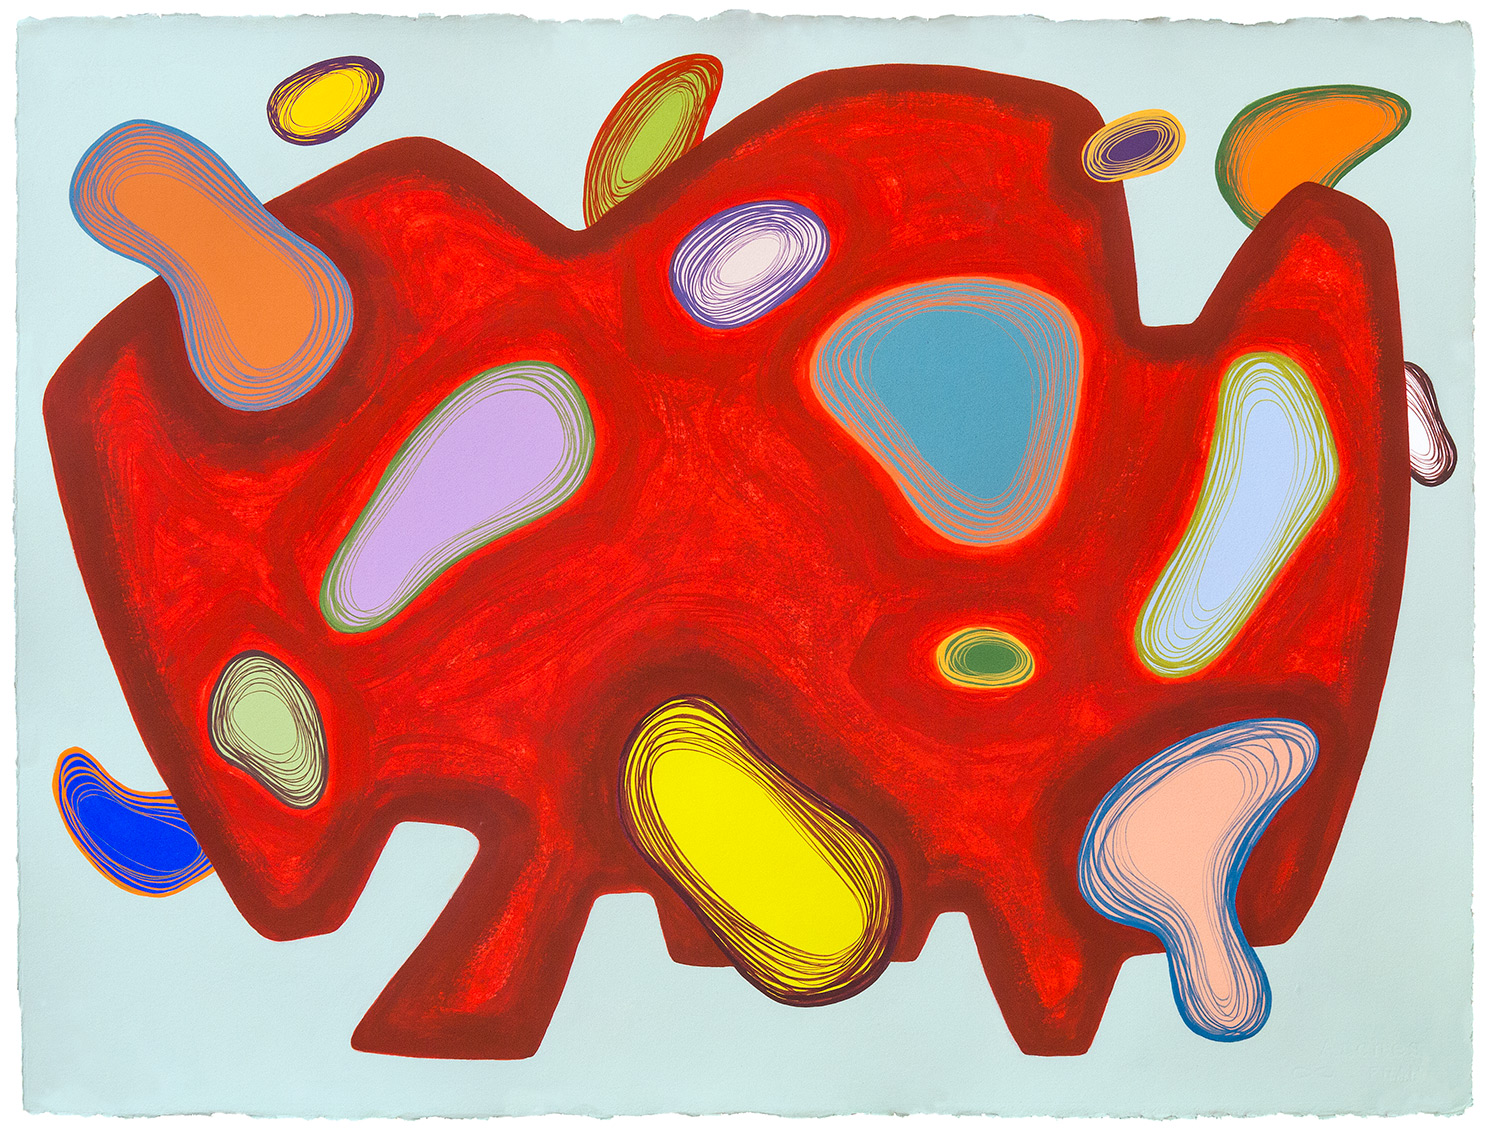 """Athanor N°S5A1"",  gouache, crayon on Arches paper  56 by 76 cm / 22 by 30 inches 2/22-26/2017 ©Pascal Demeester"